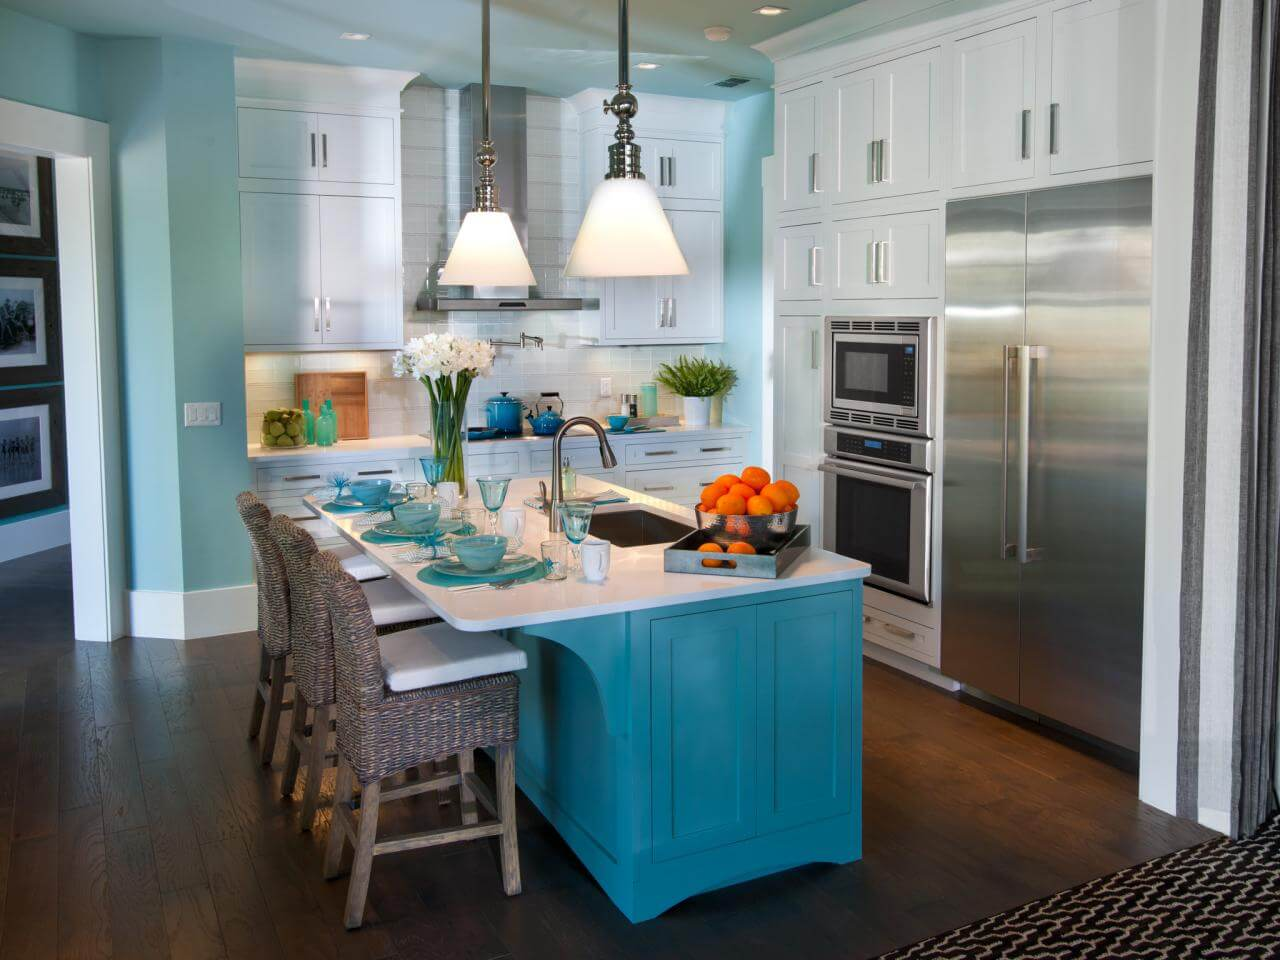 Finally, enjoy the light blue kitchen island